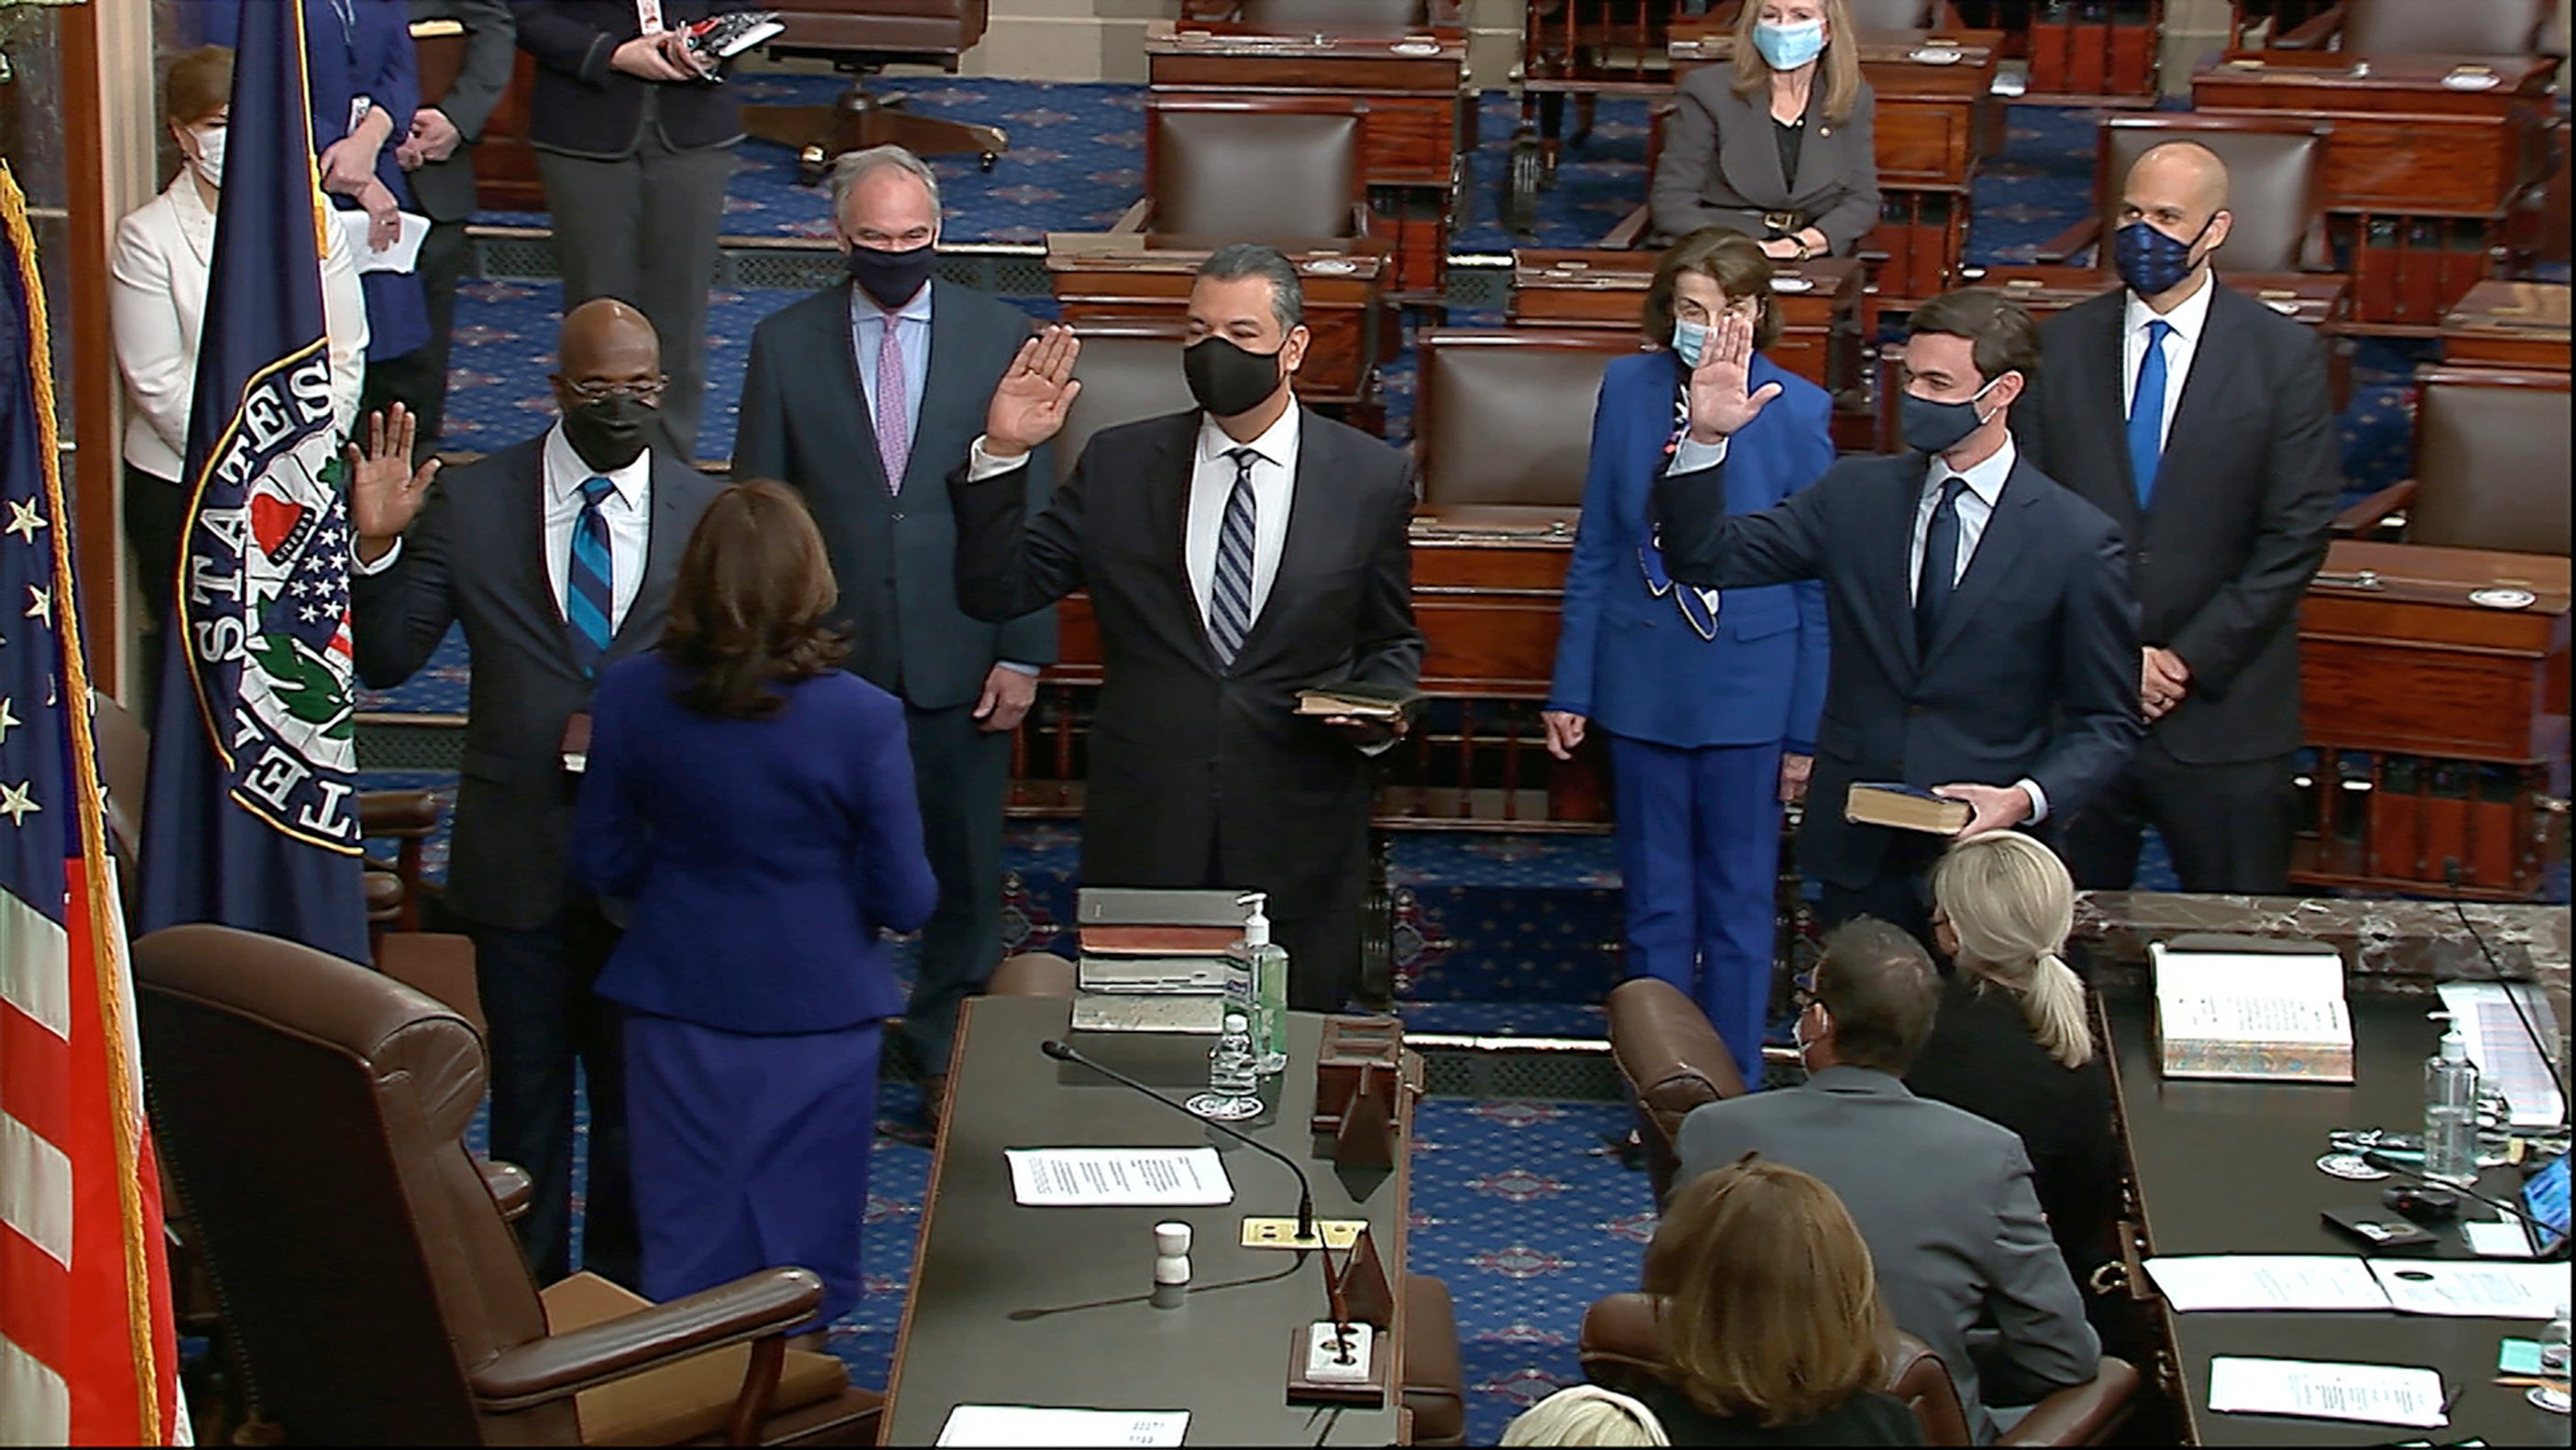 Kamala Harris swears in three senators in first official act as VP as Senate switches to Democratic control